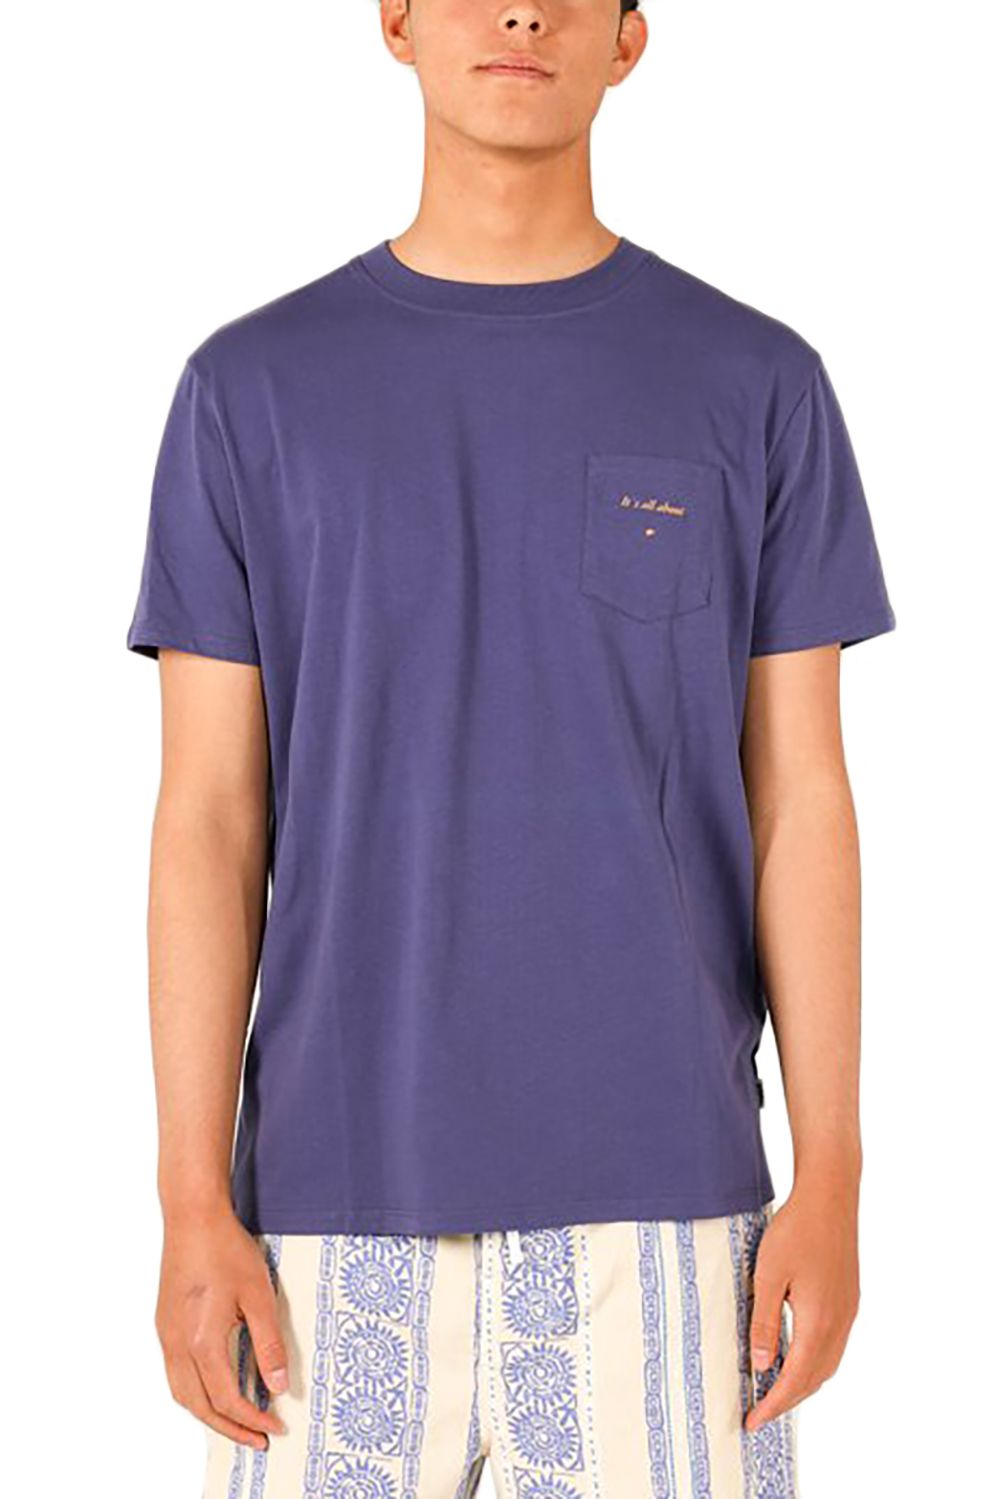 T-Shirt Pukas POCKET SURFING WITH AMIGOS Ultra Violet